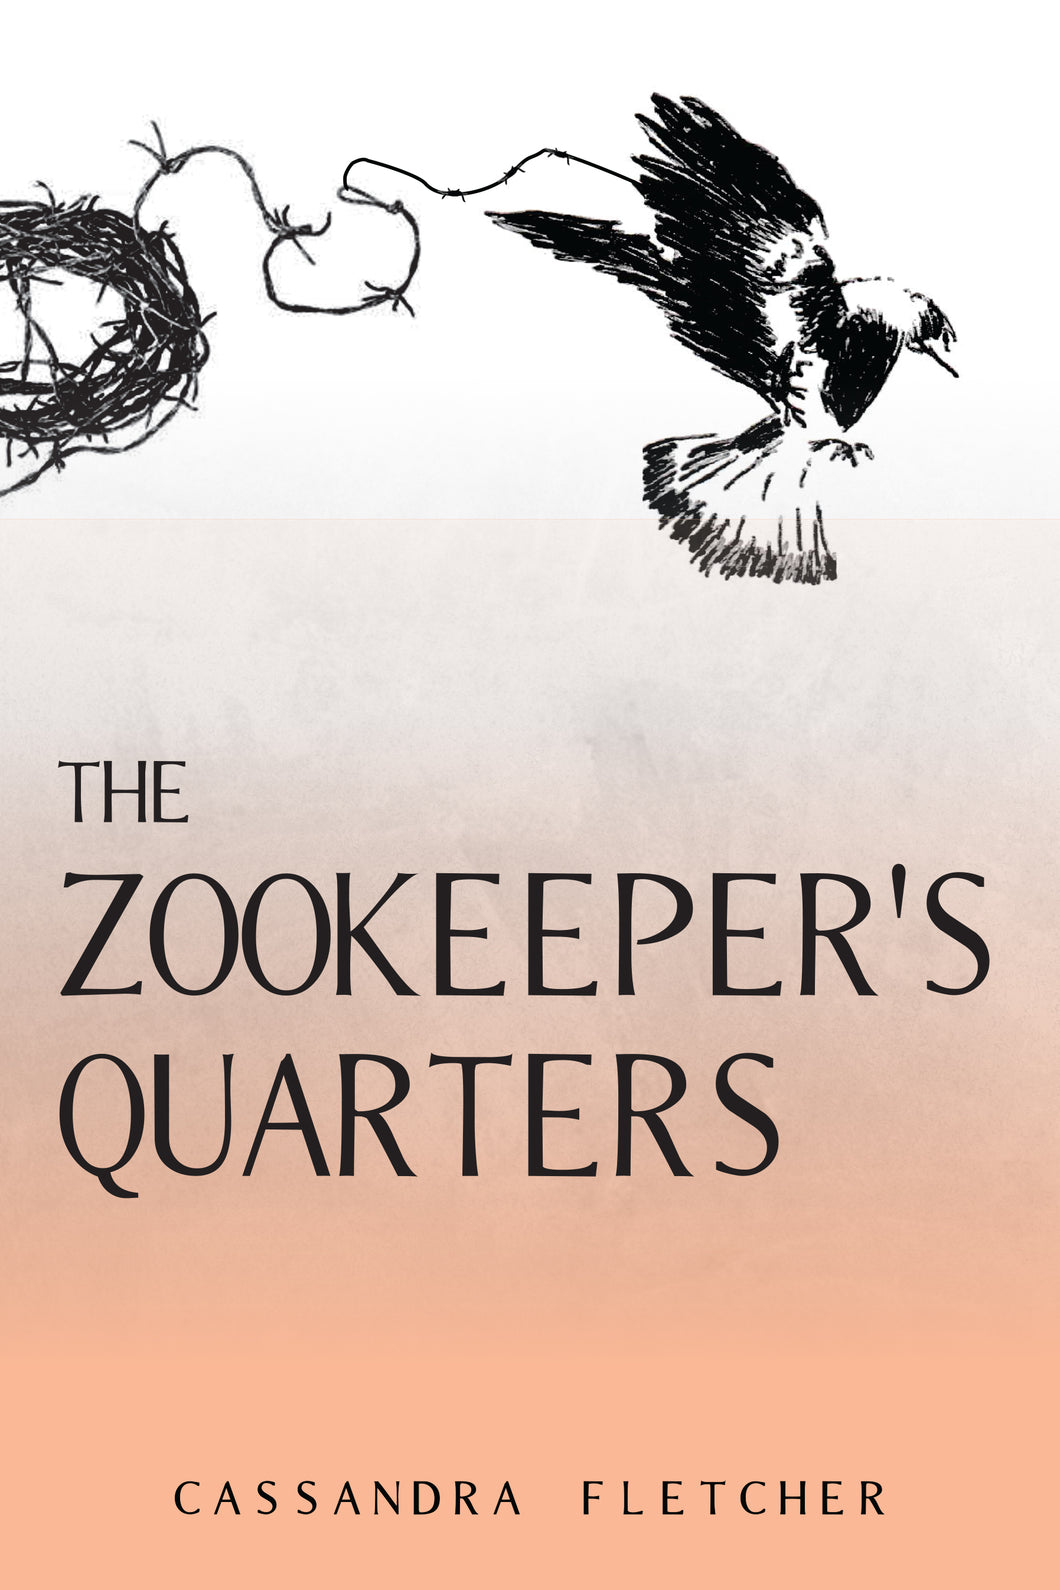 The Zookeeper's Quarters